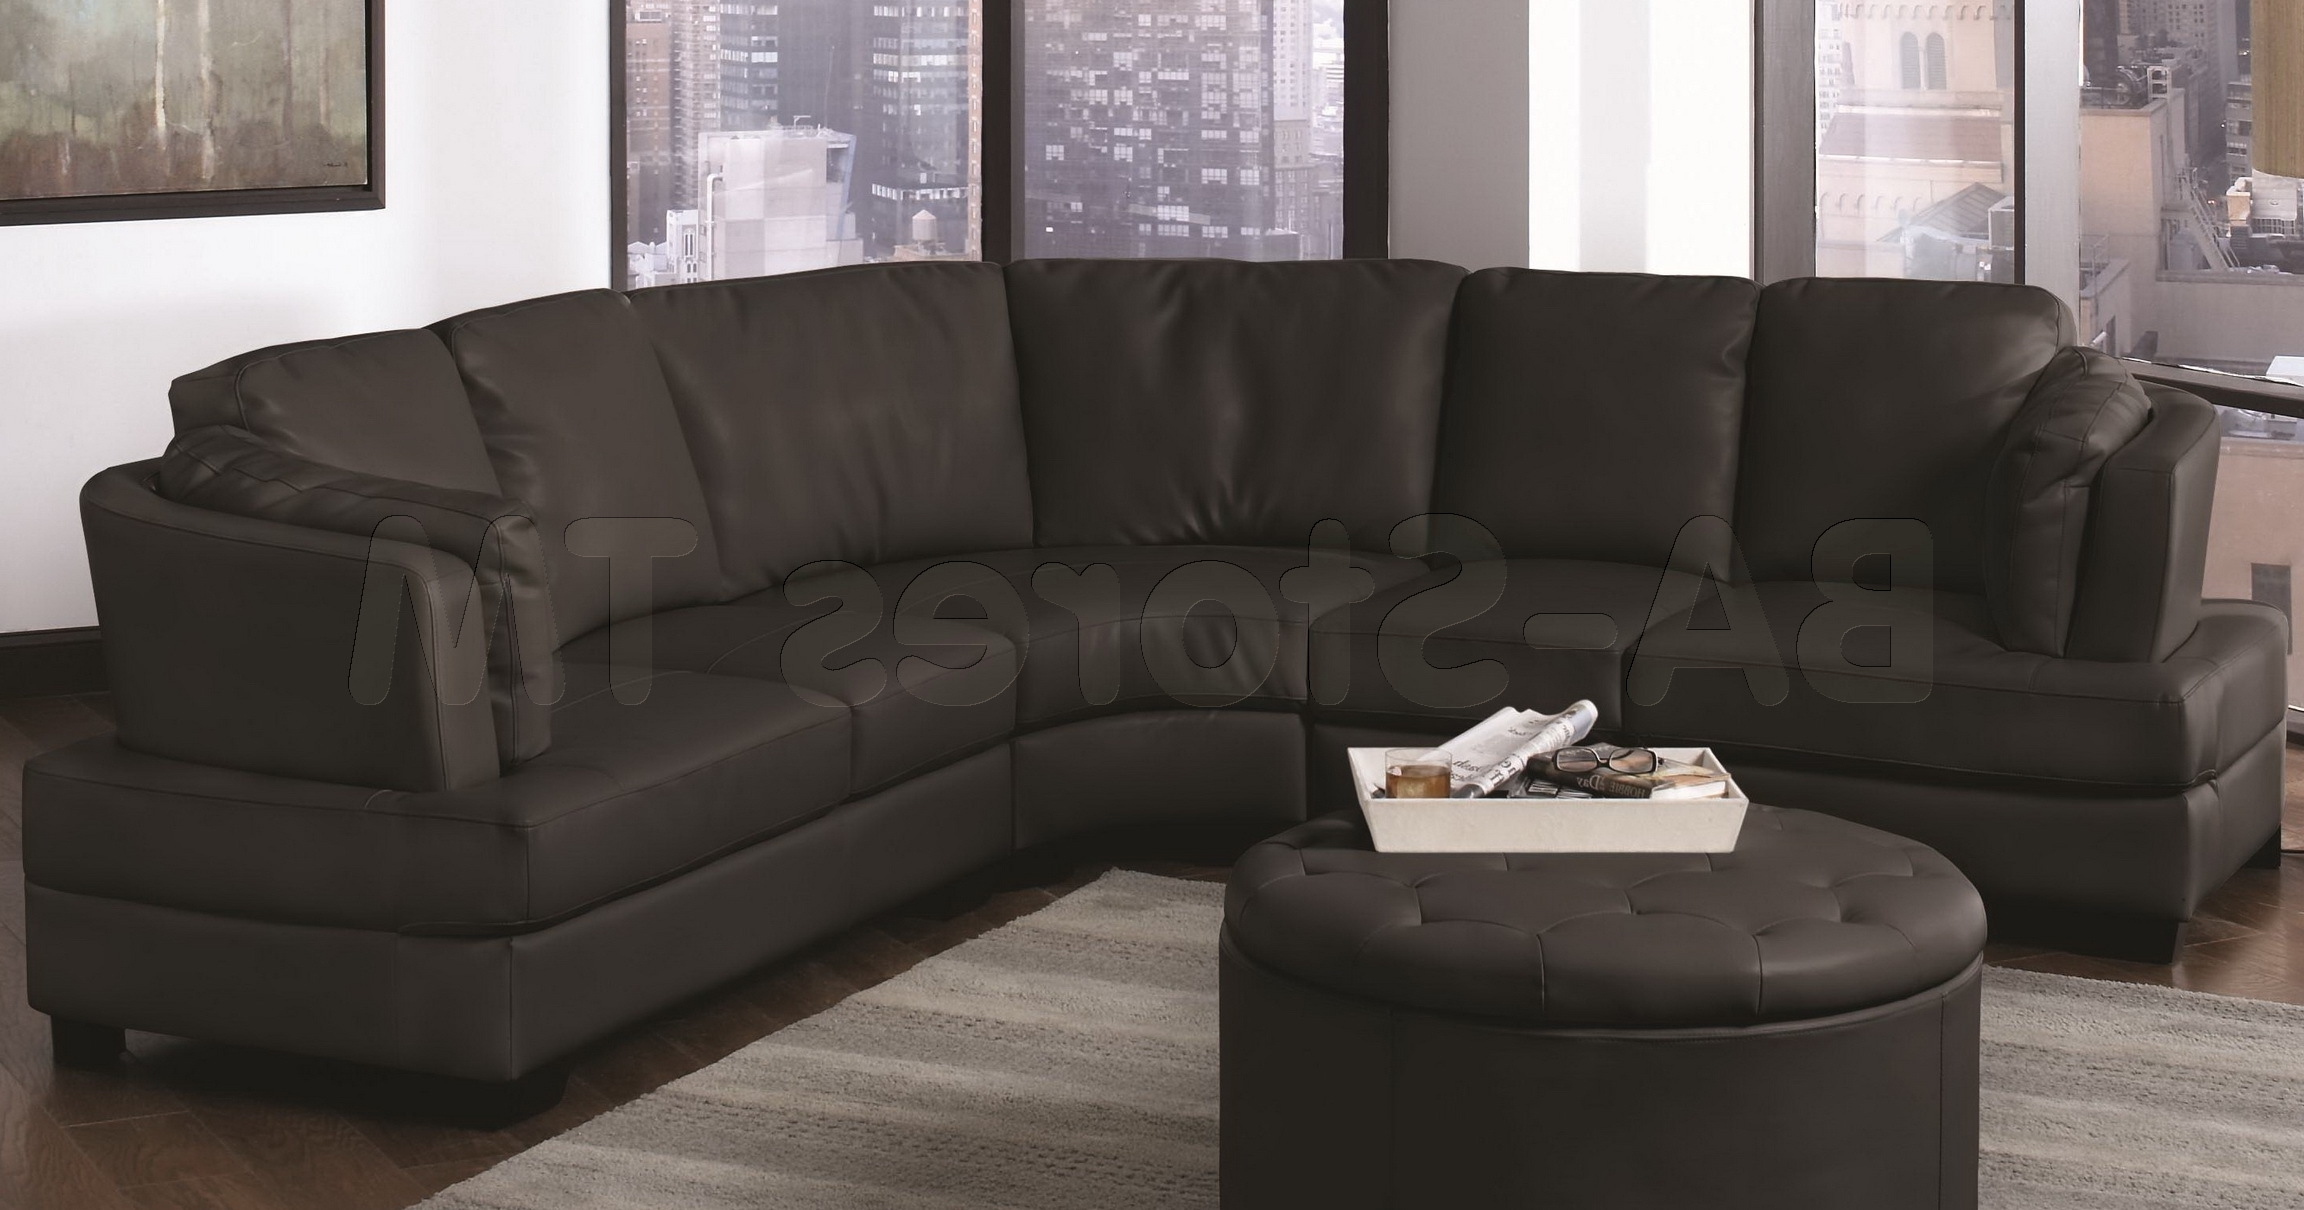 Most Current Amazing Round Sectional Sofa 63 With Additional Modern Sofa Ideas In Round Sectional Sofas (View 4 of 15)